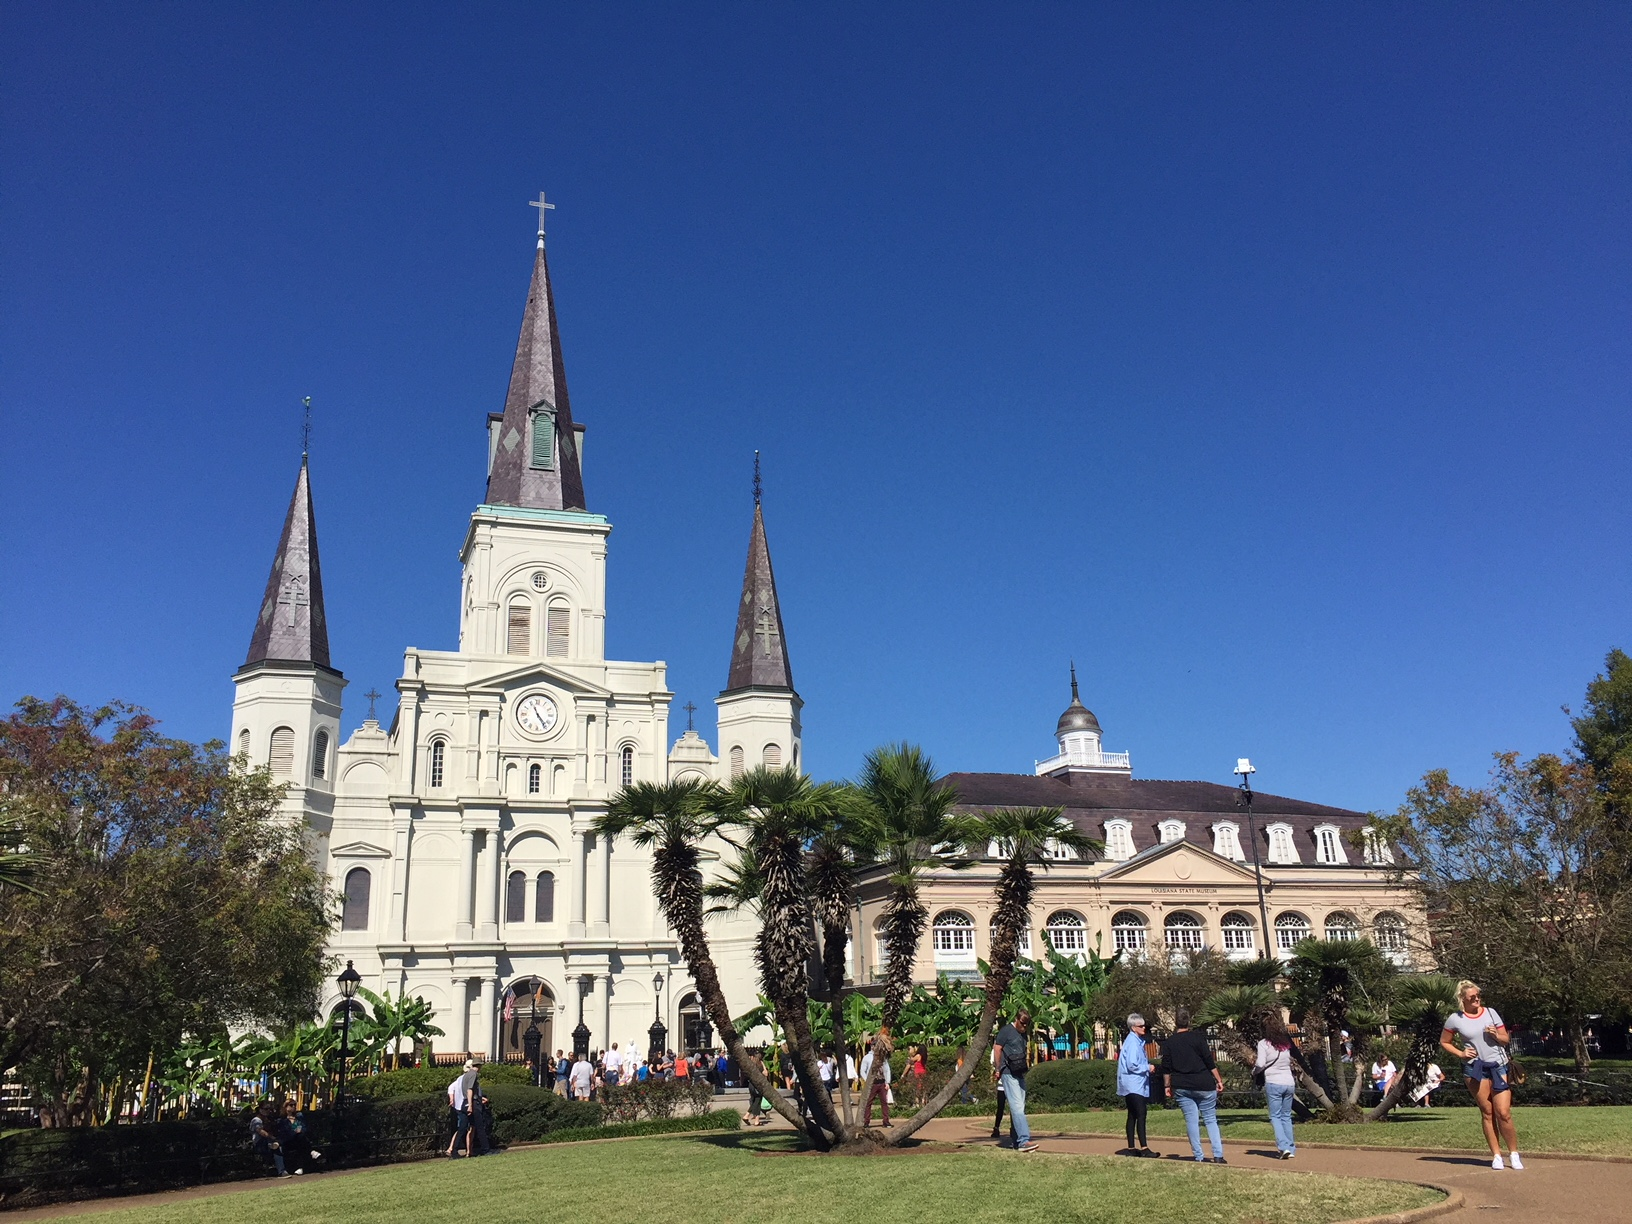 St. Louis Cathedral with the Presbytère on the right, taken from Jackson Square.